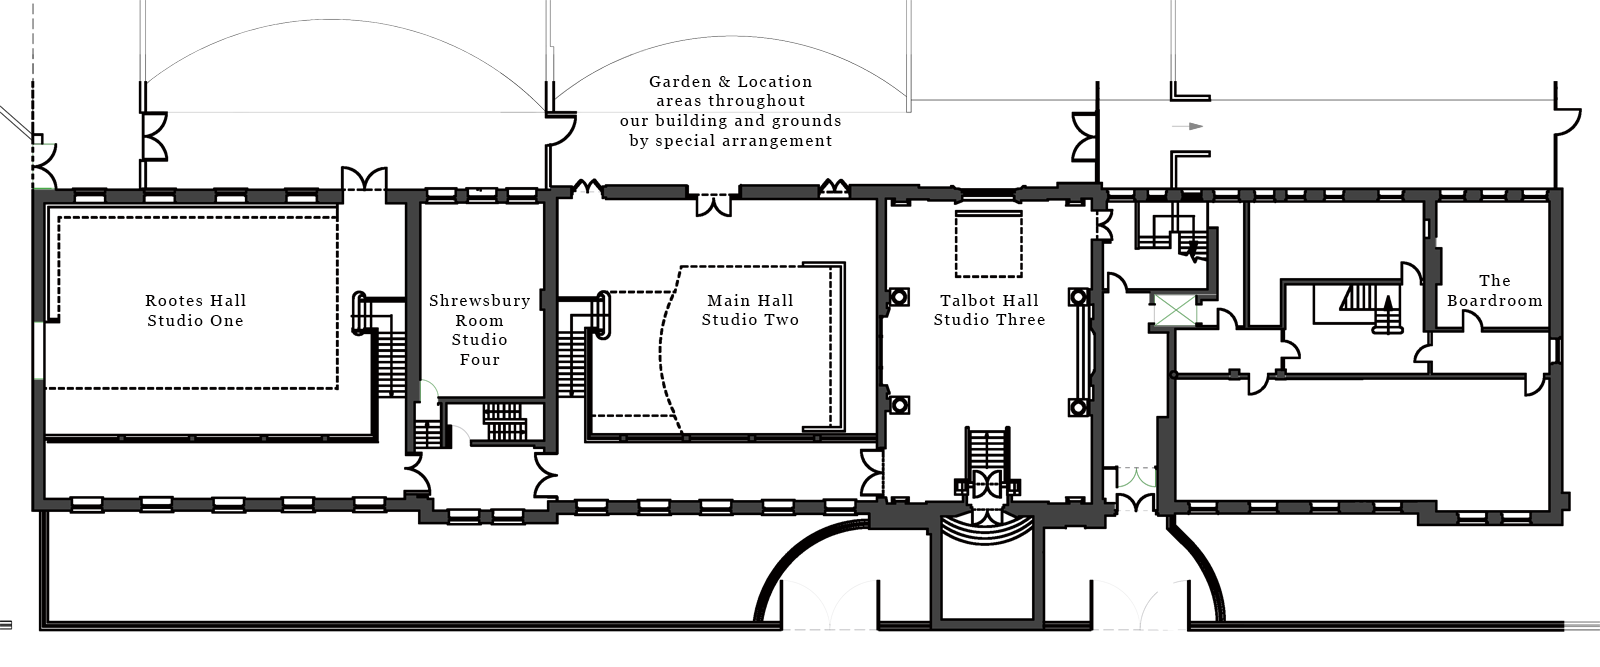 Sunbeam Studios Floor Plan